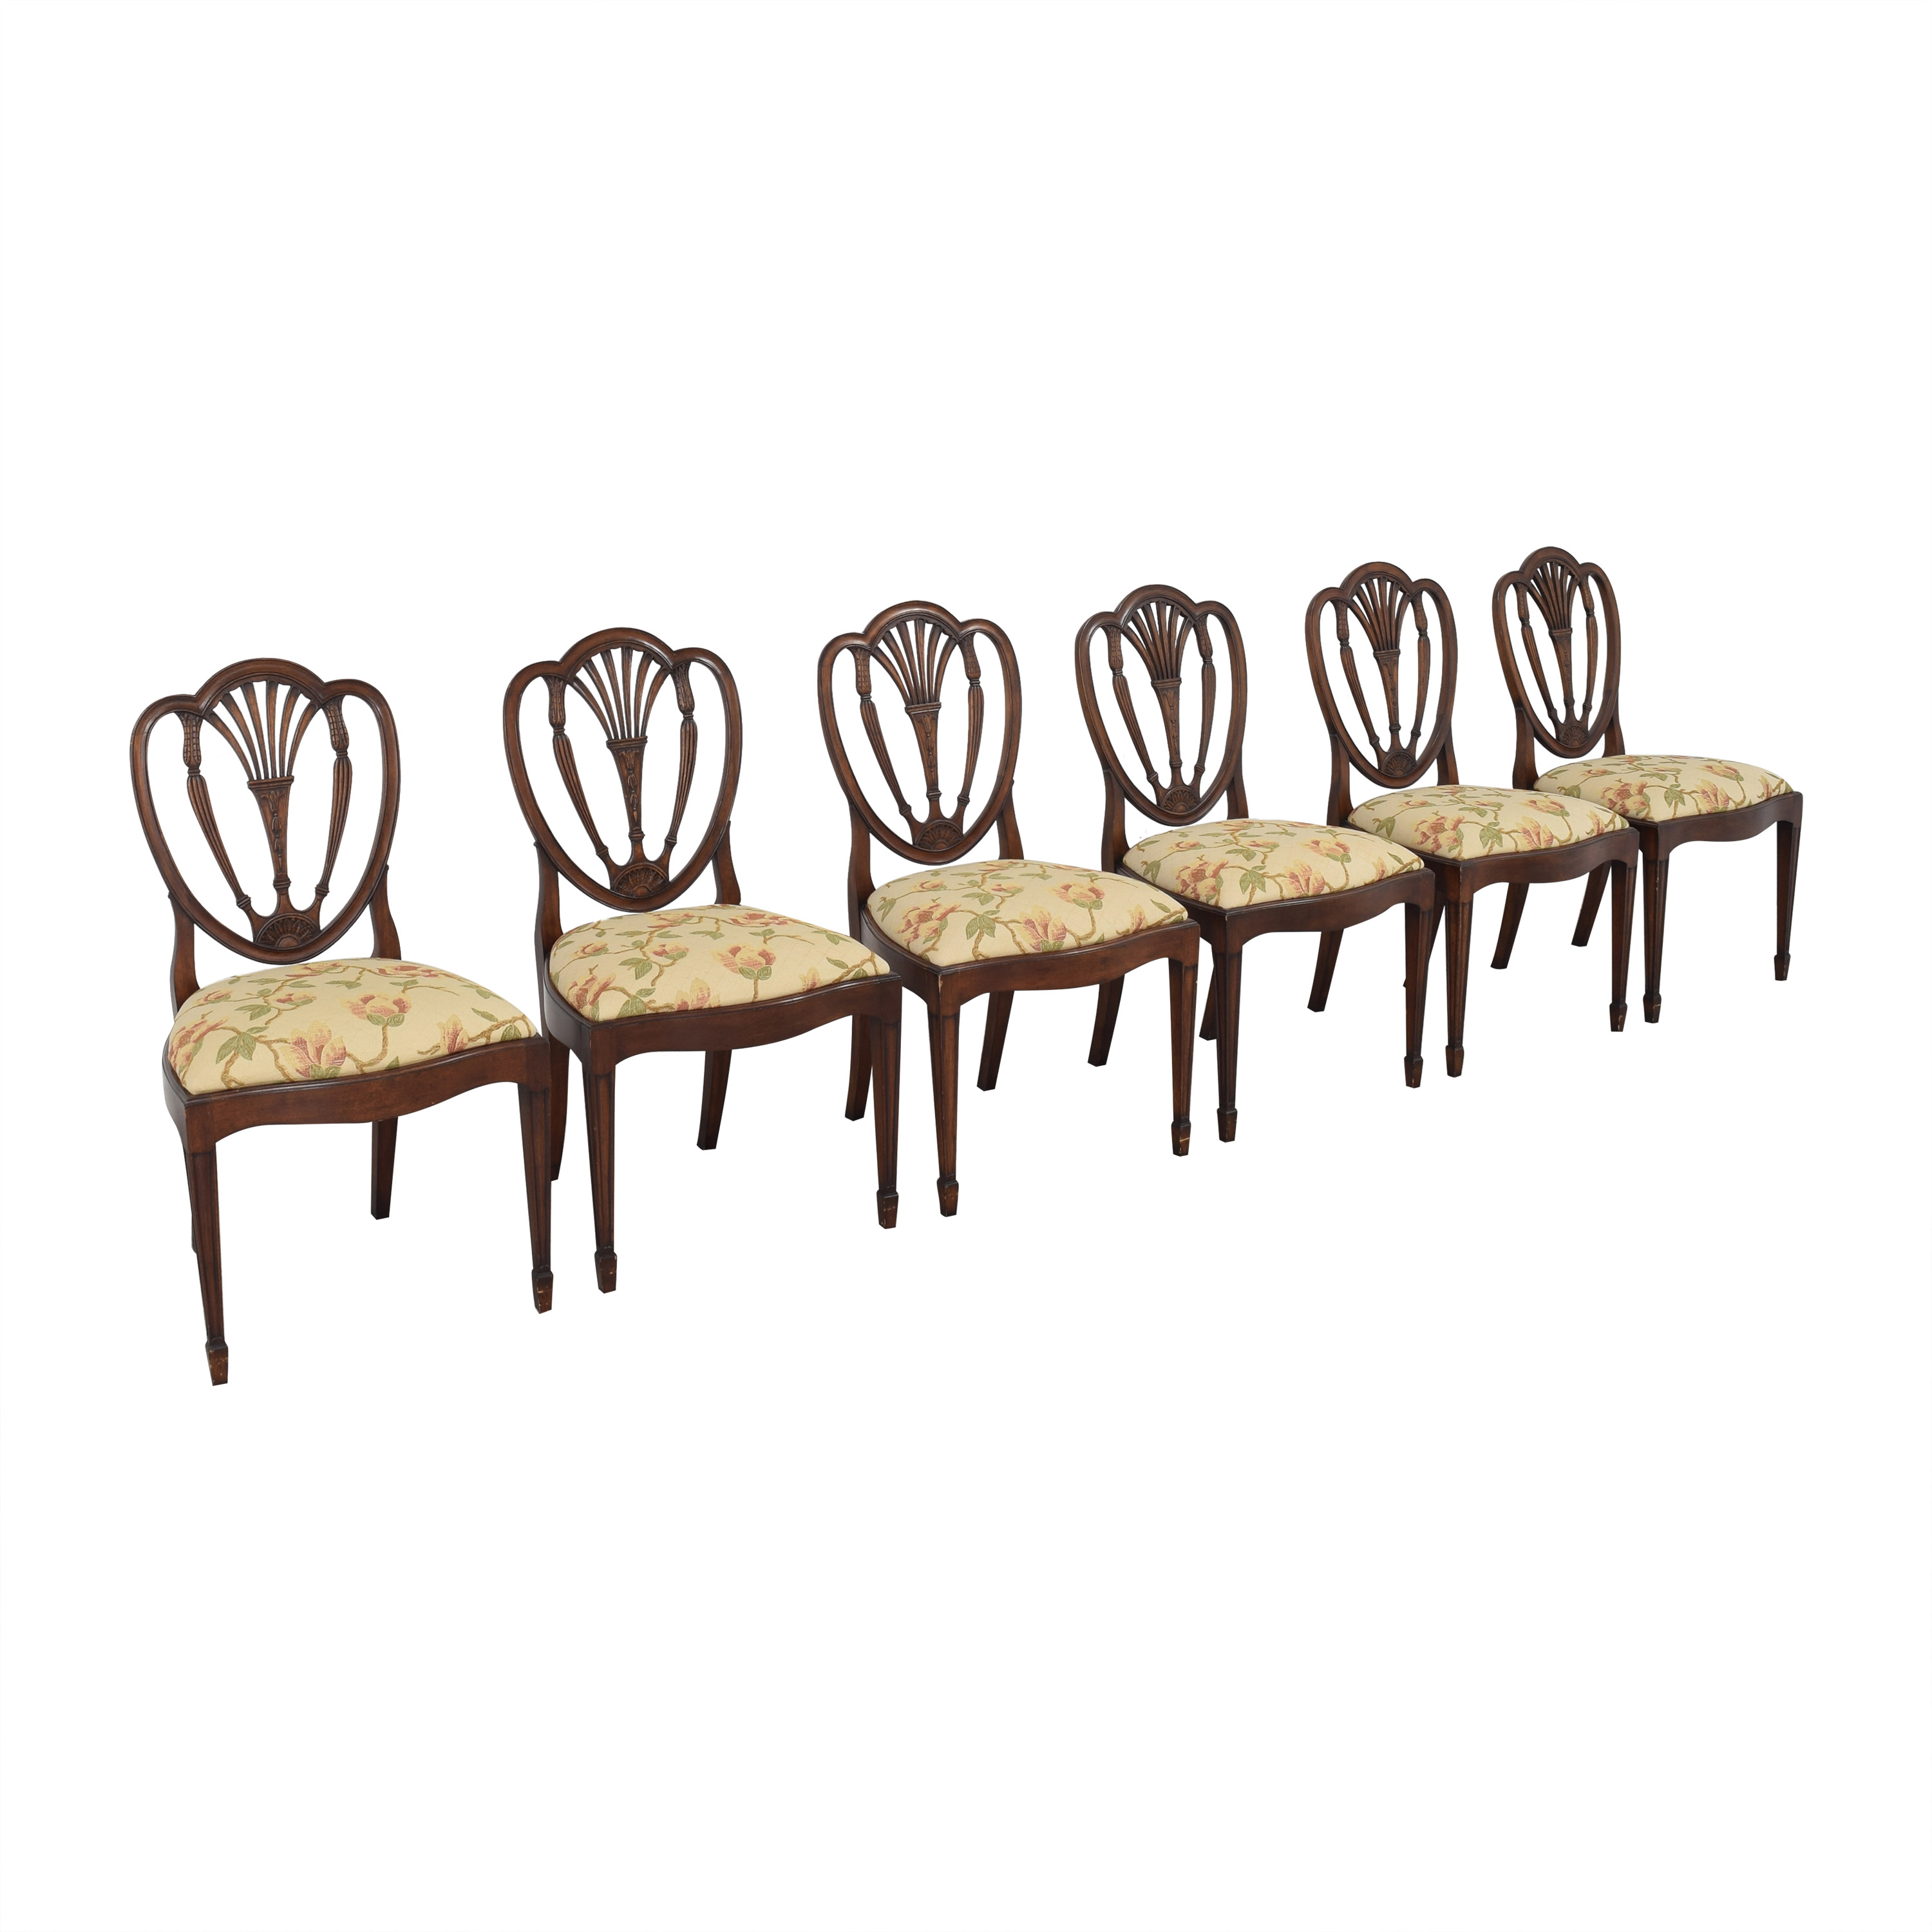 Ardley Hall Ardley Hall Dining Chairs dimensions